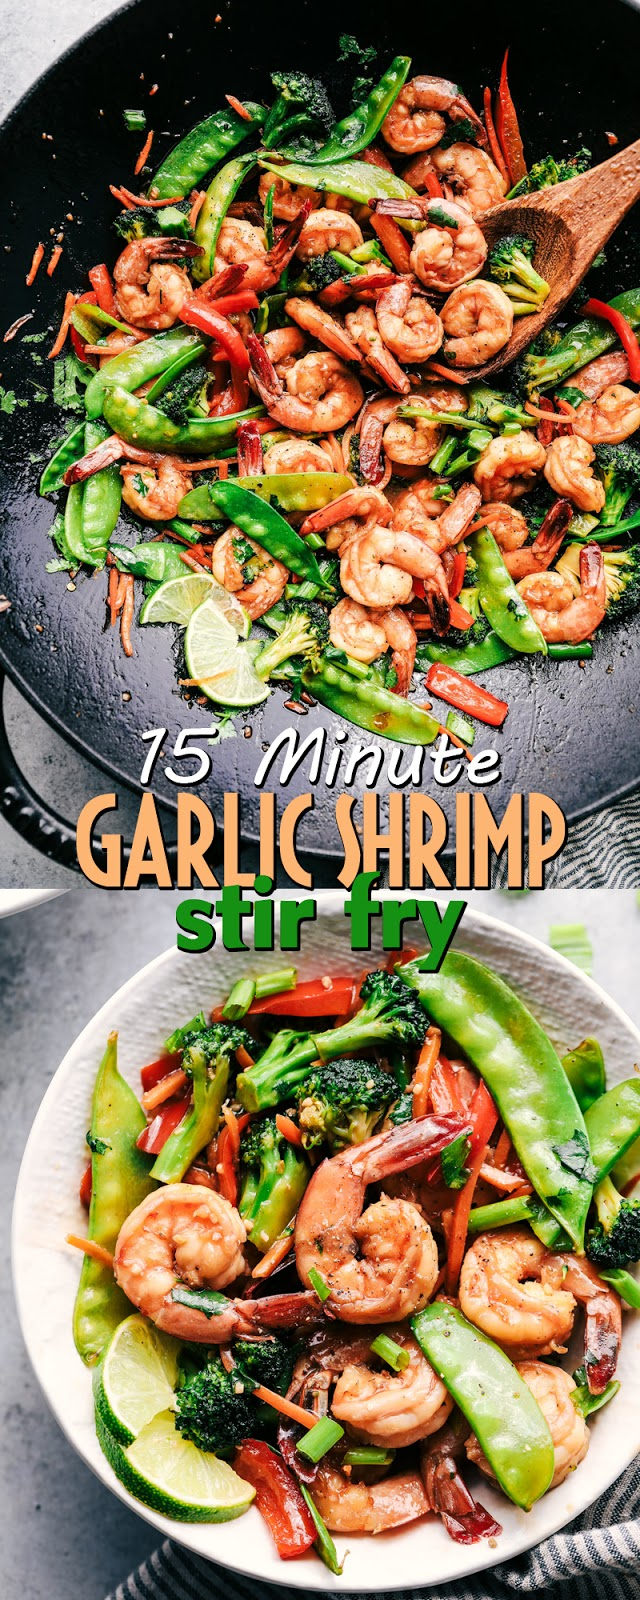 15 MINUTE GARLIC SHRIMP STIR FRY